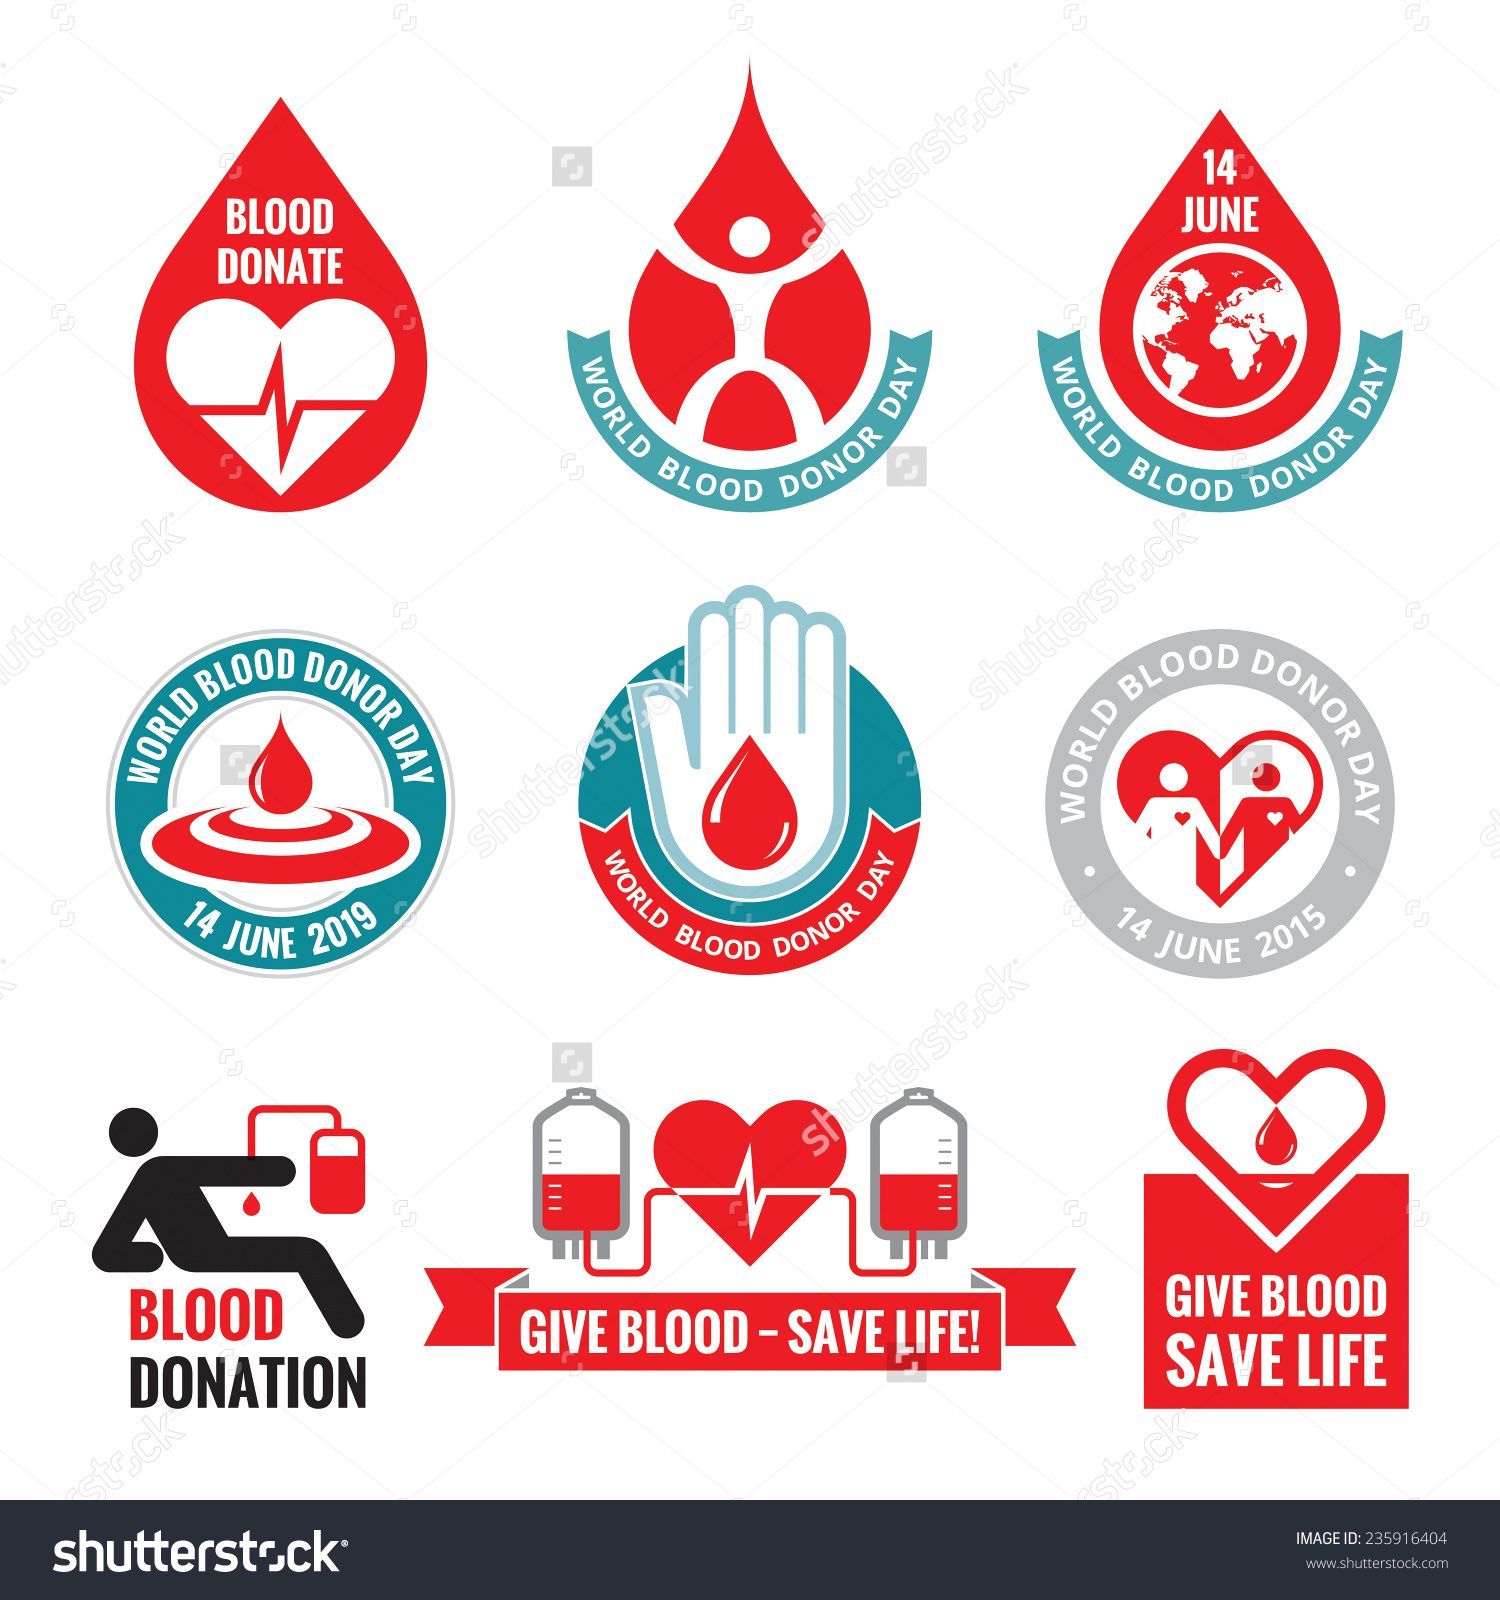 Poster design on blood donation - Explore Blood Donation Badge Logo And More